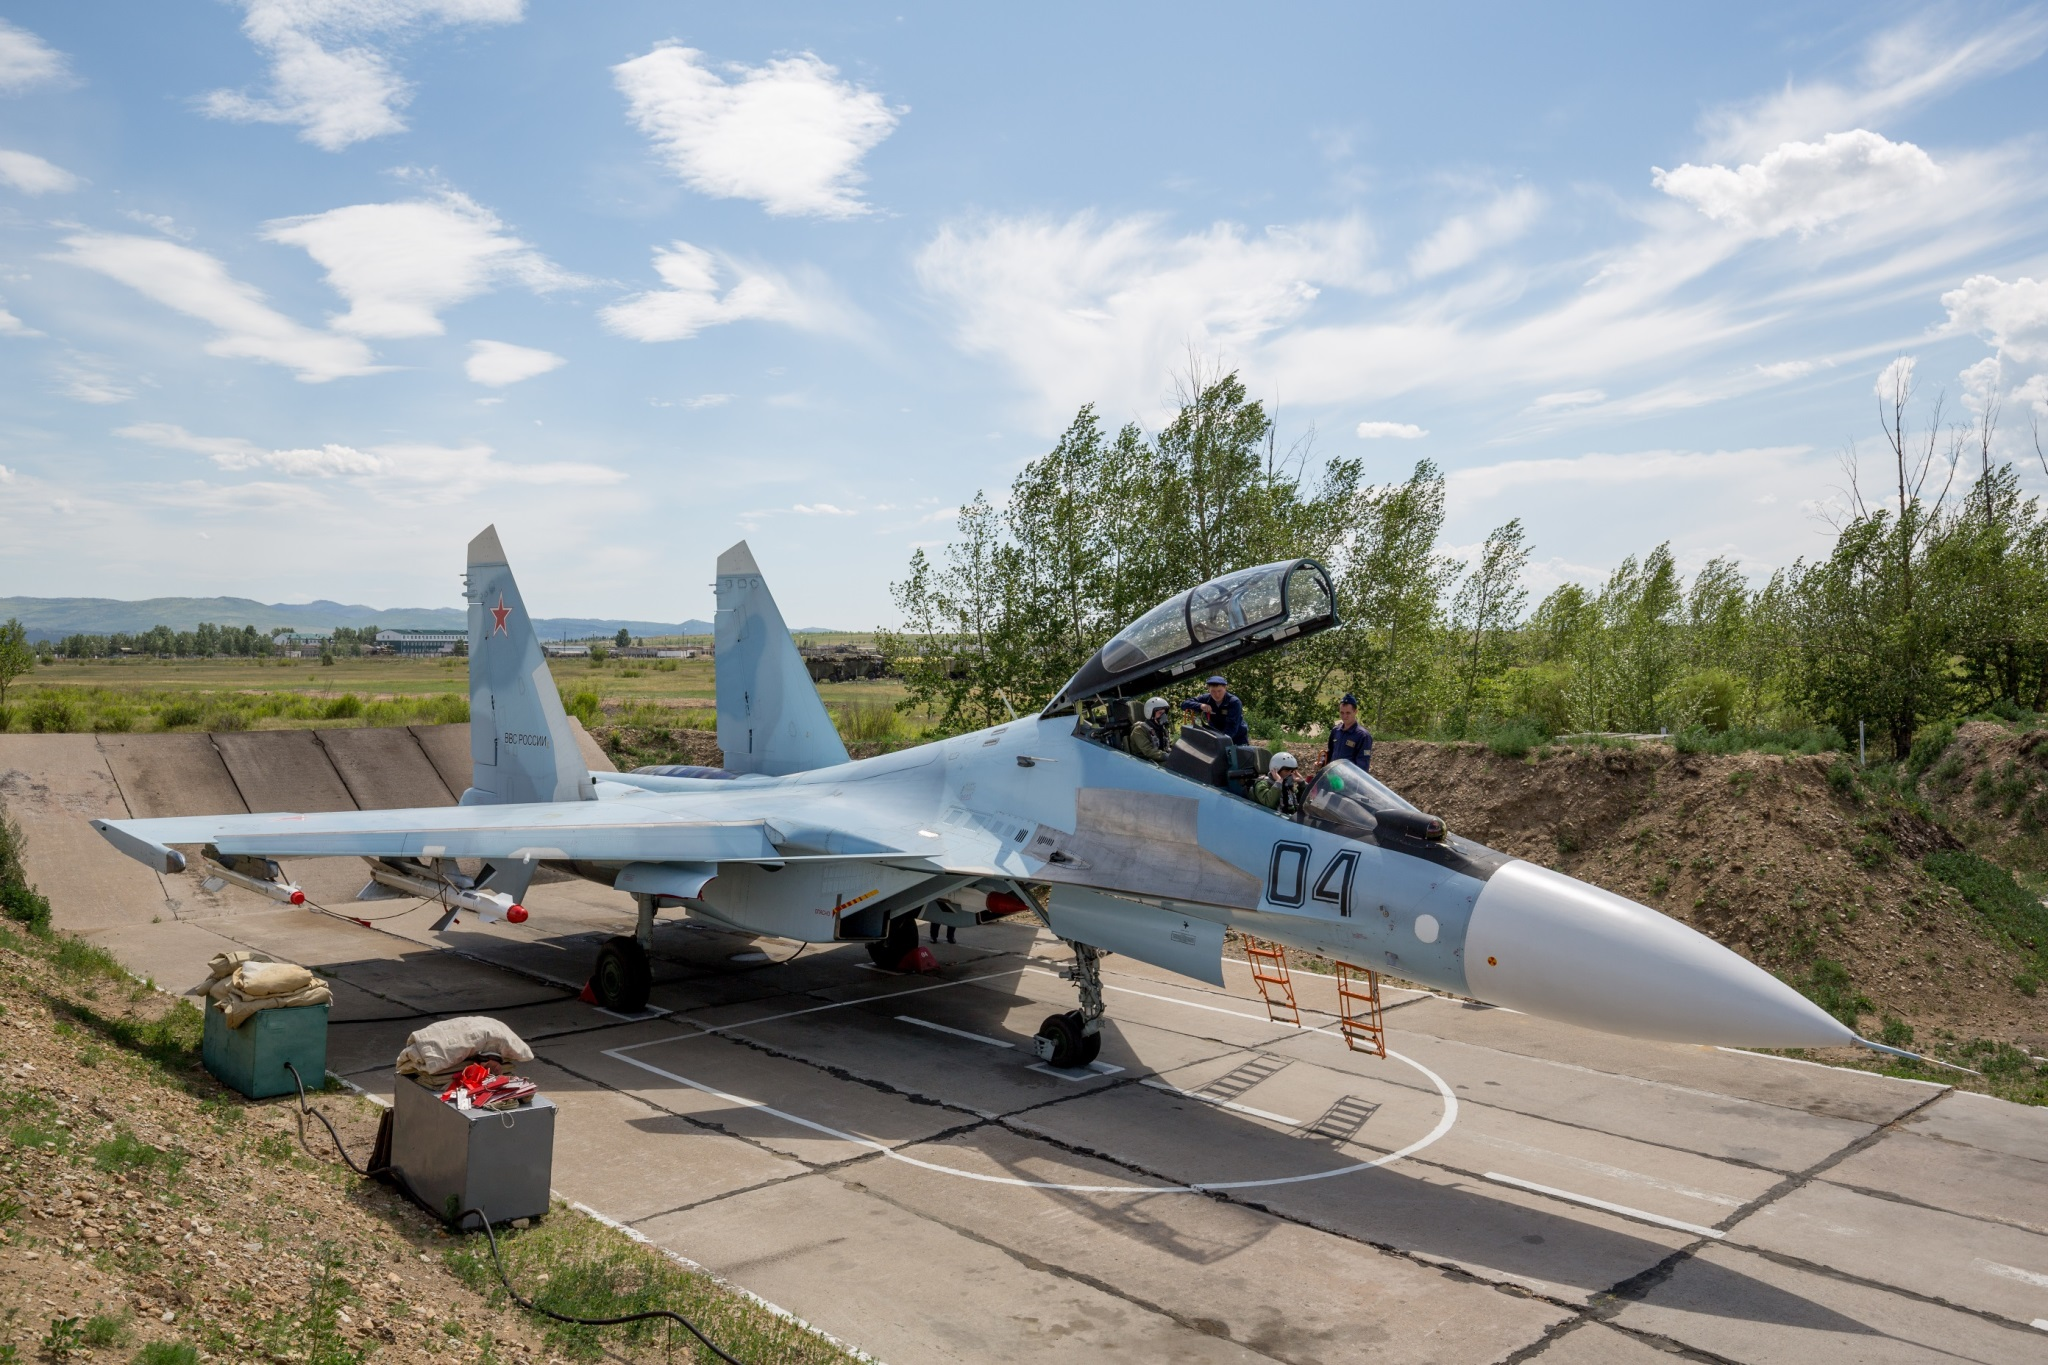 su 34 in syria with Satellite Imagery Of The 4 Newest Russian Su30sm on 50824597 as well 201511251019803901 Syrie Guerre Avion Russe also Mi28 Night Hunter Attack Helicopter Helmet also Russian Su 34  bat Aircraft furthermore Planes2.